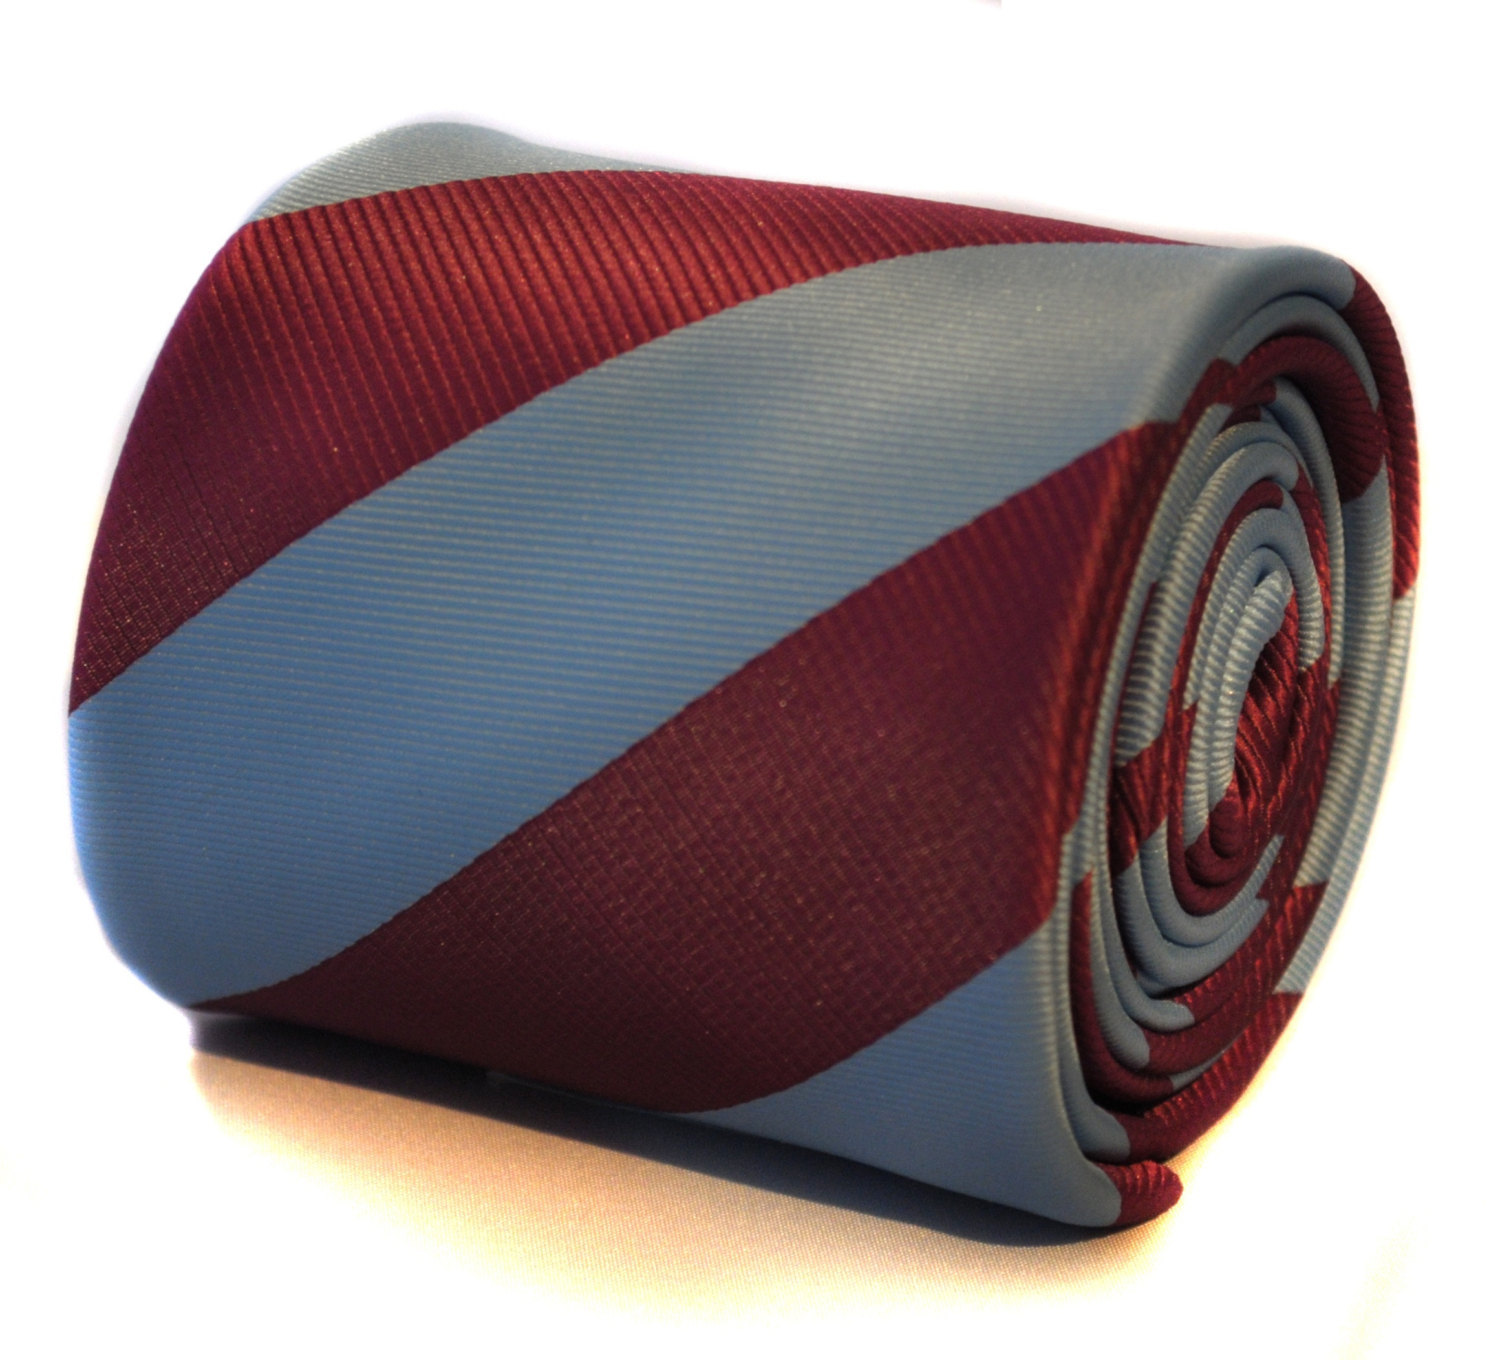 burgundy and light blue barber tie with signature floral design to the rear by F